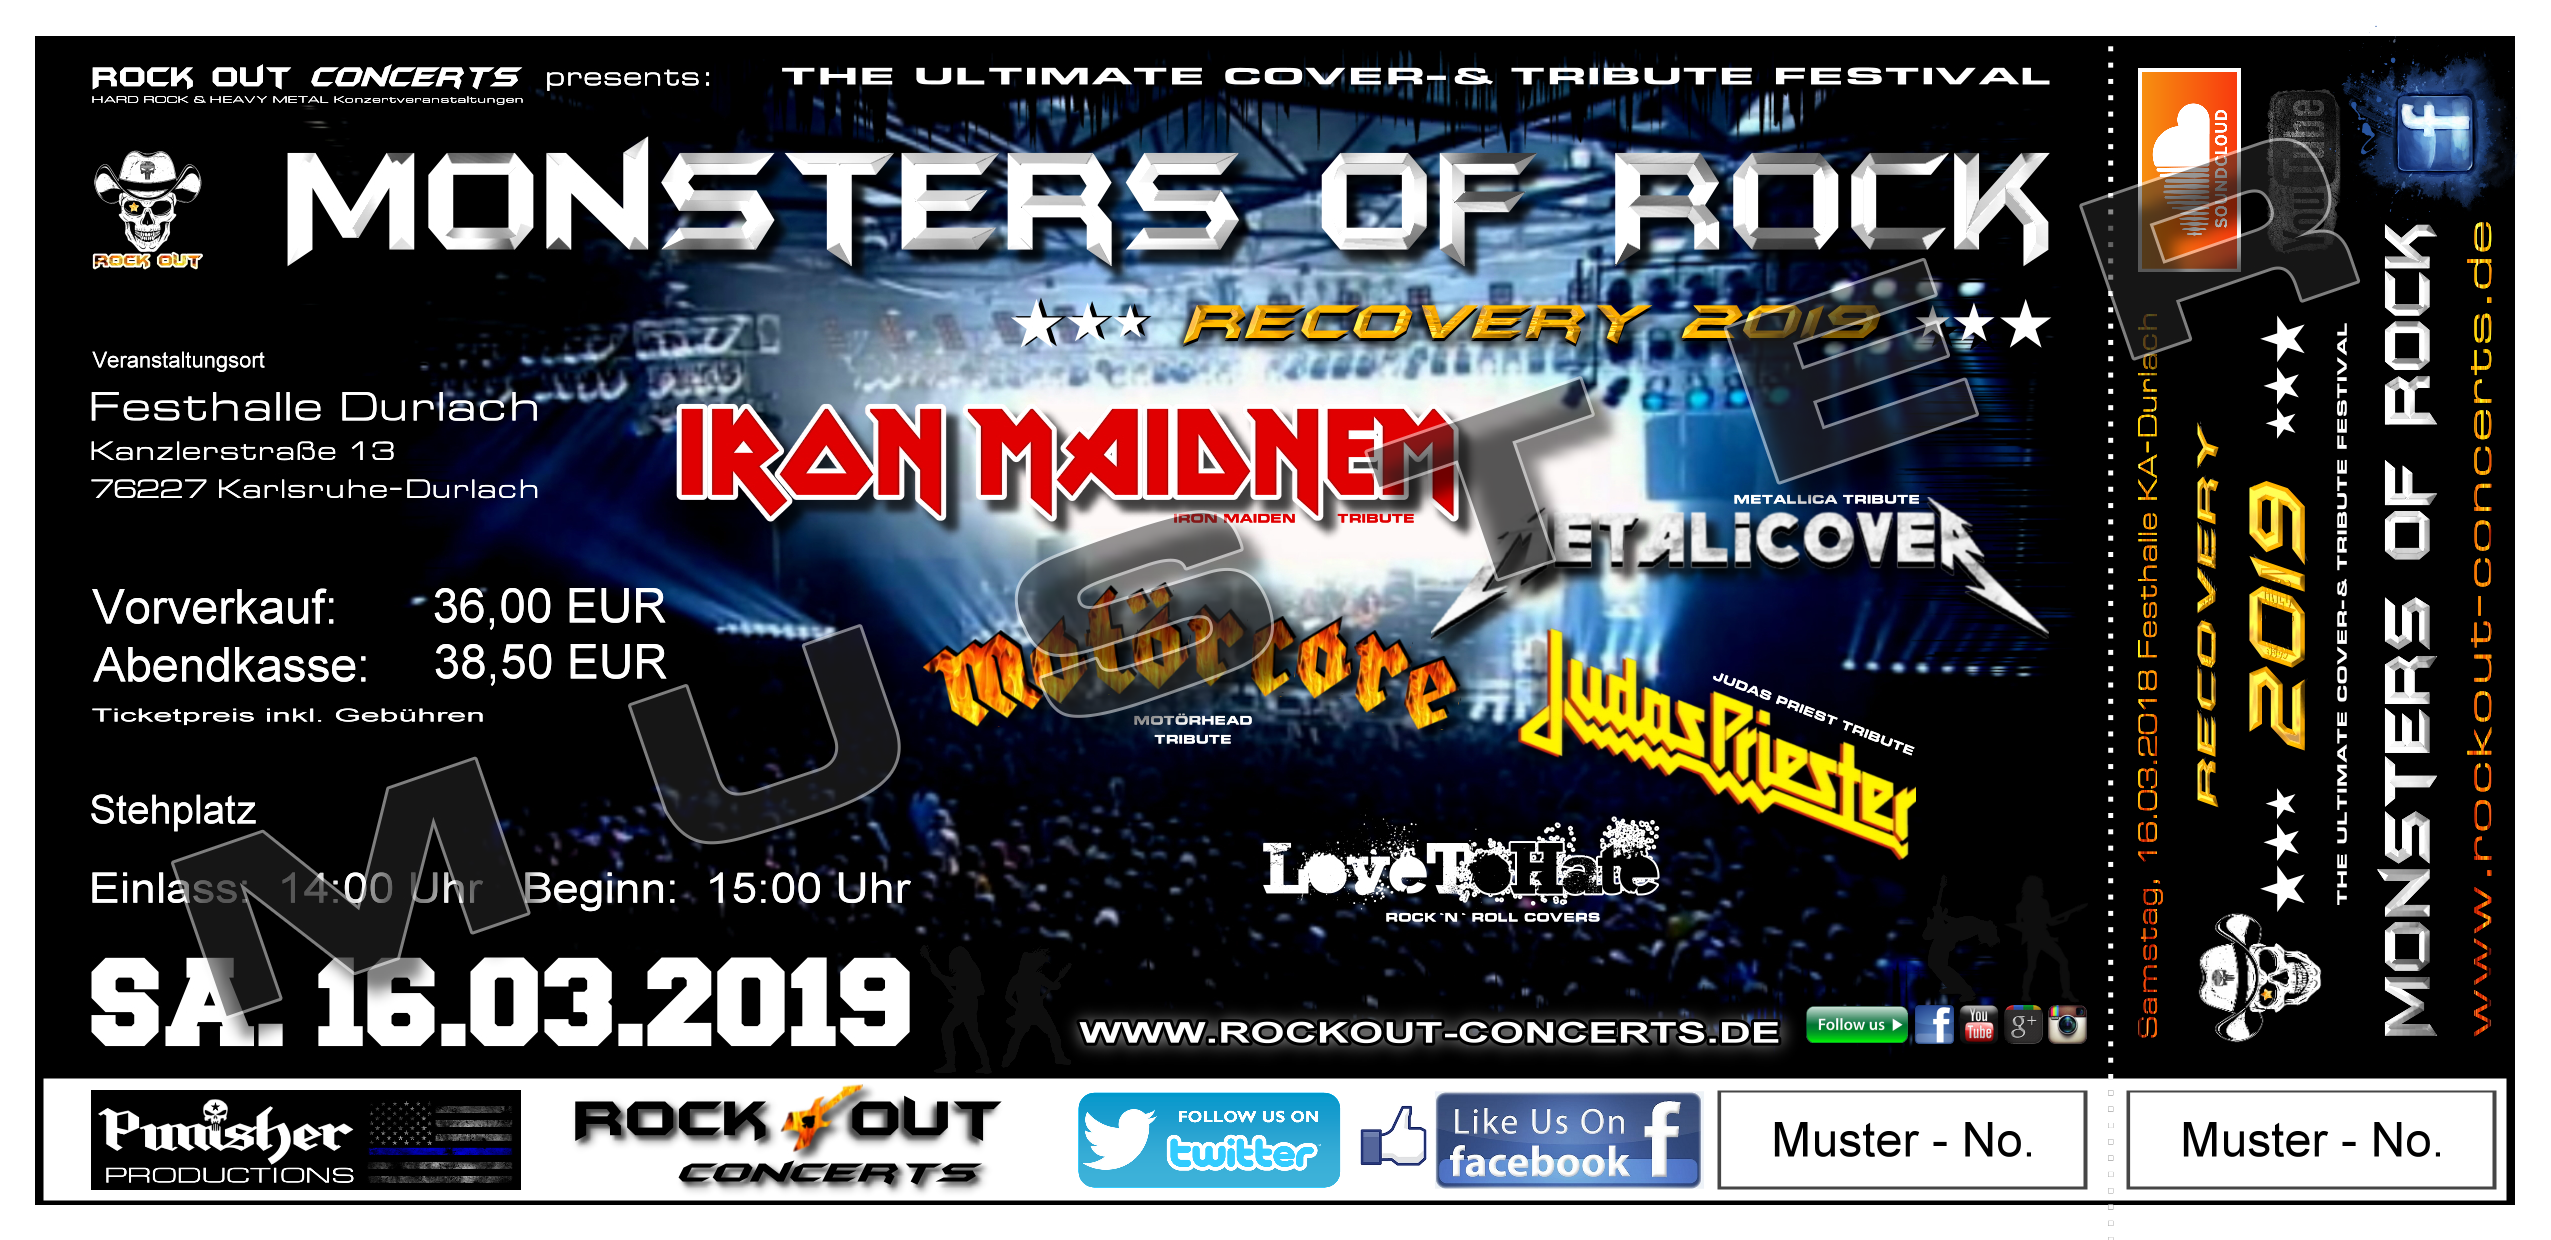 Monsters of Rock Festhalle Durlach